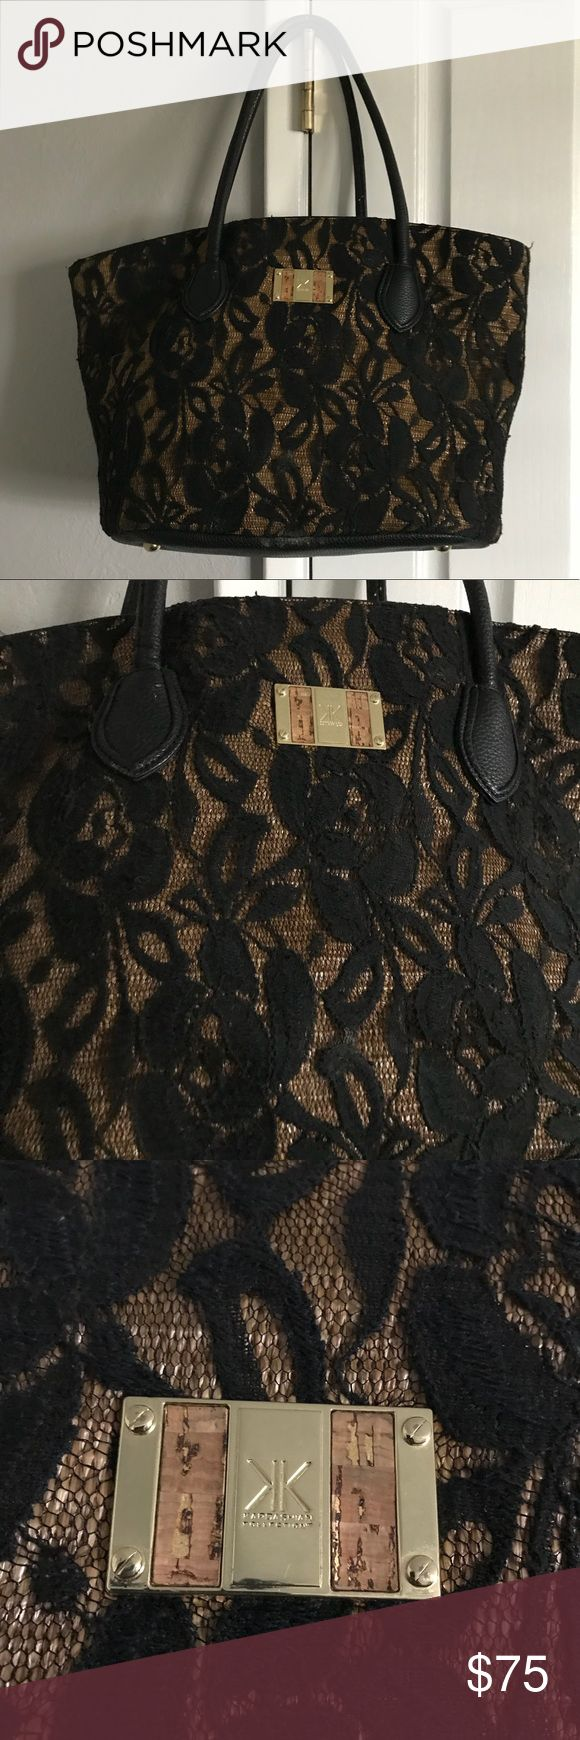 ⭐️MAKE OFFERS! Kardashian kollection lace bag Gorgeous bag with gold details and a lace overlay all over. Super roomy and sturdy. Fits a lot of stuff! No flaws. Has been used but is in amazing condition. Always open to reasonable offers! Kardashian Kollection Bags